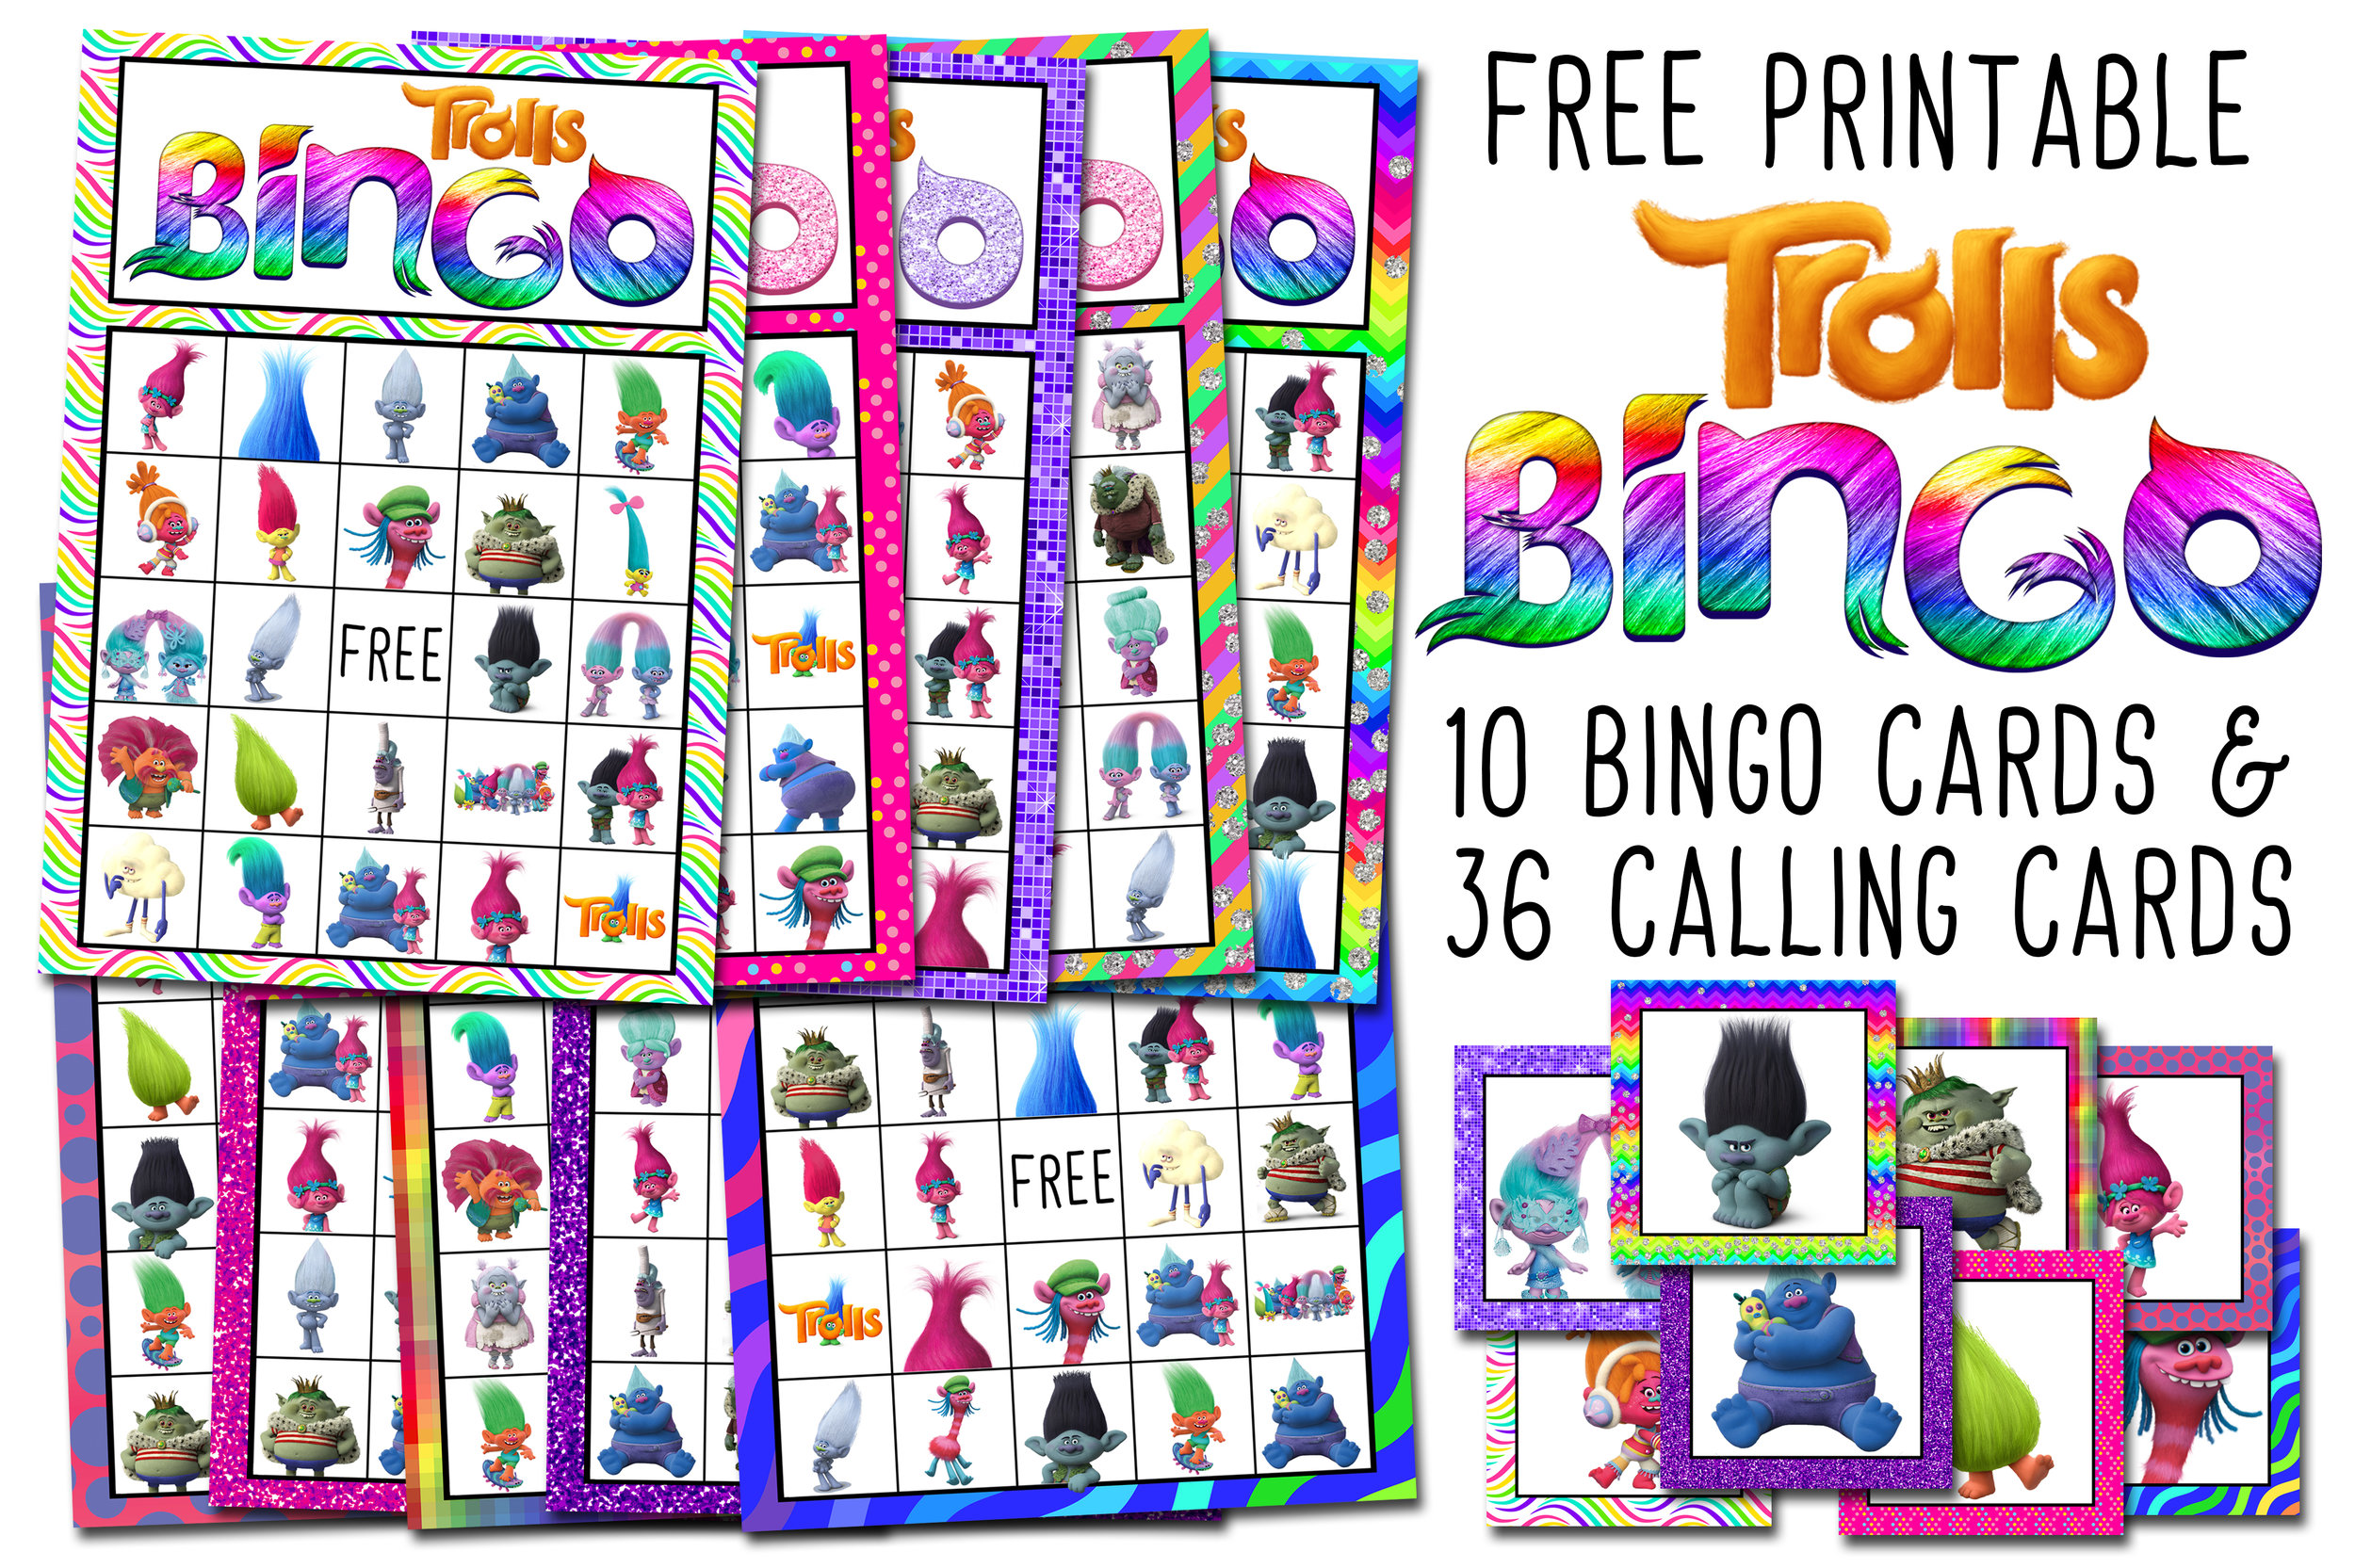 Trolls Free Printable Bingo Game Cards And Calling Cards